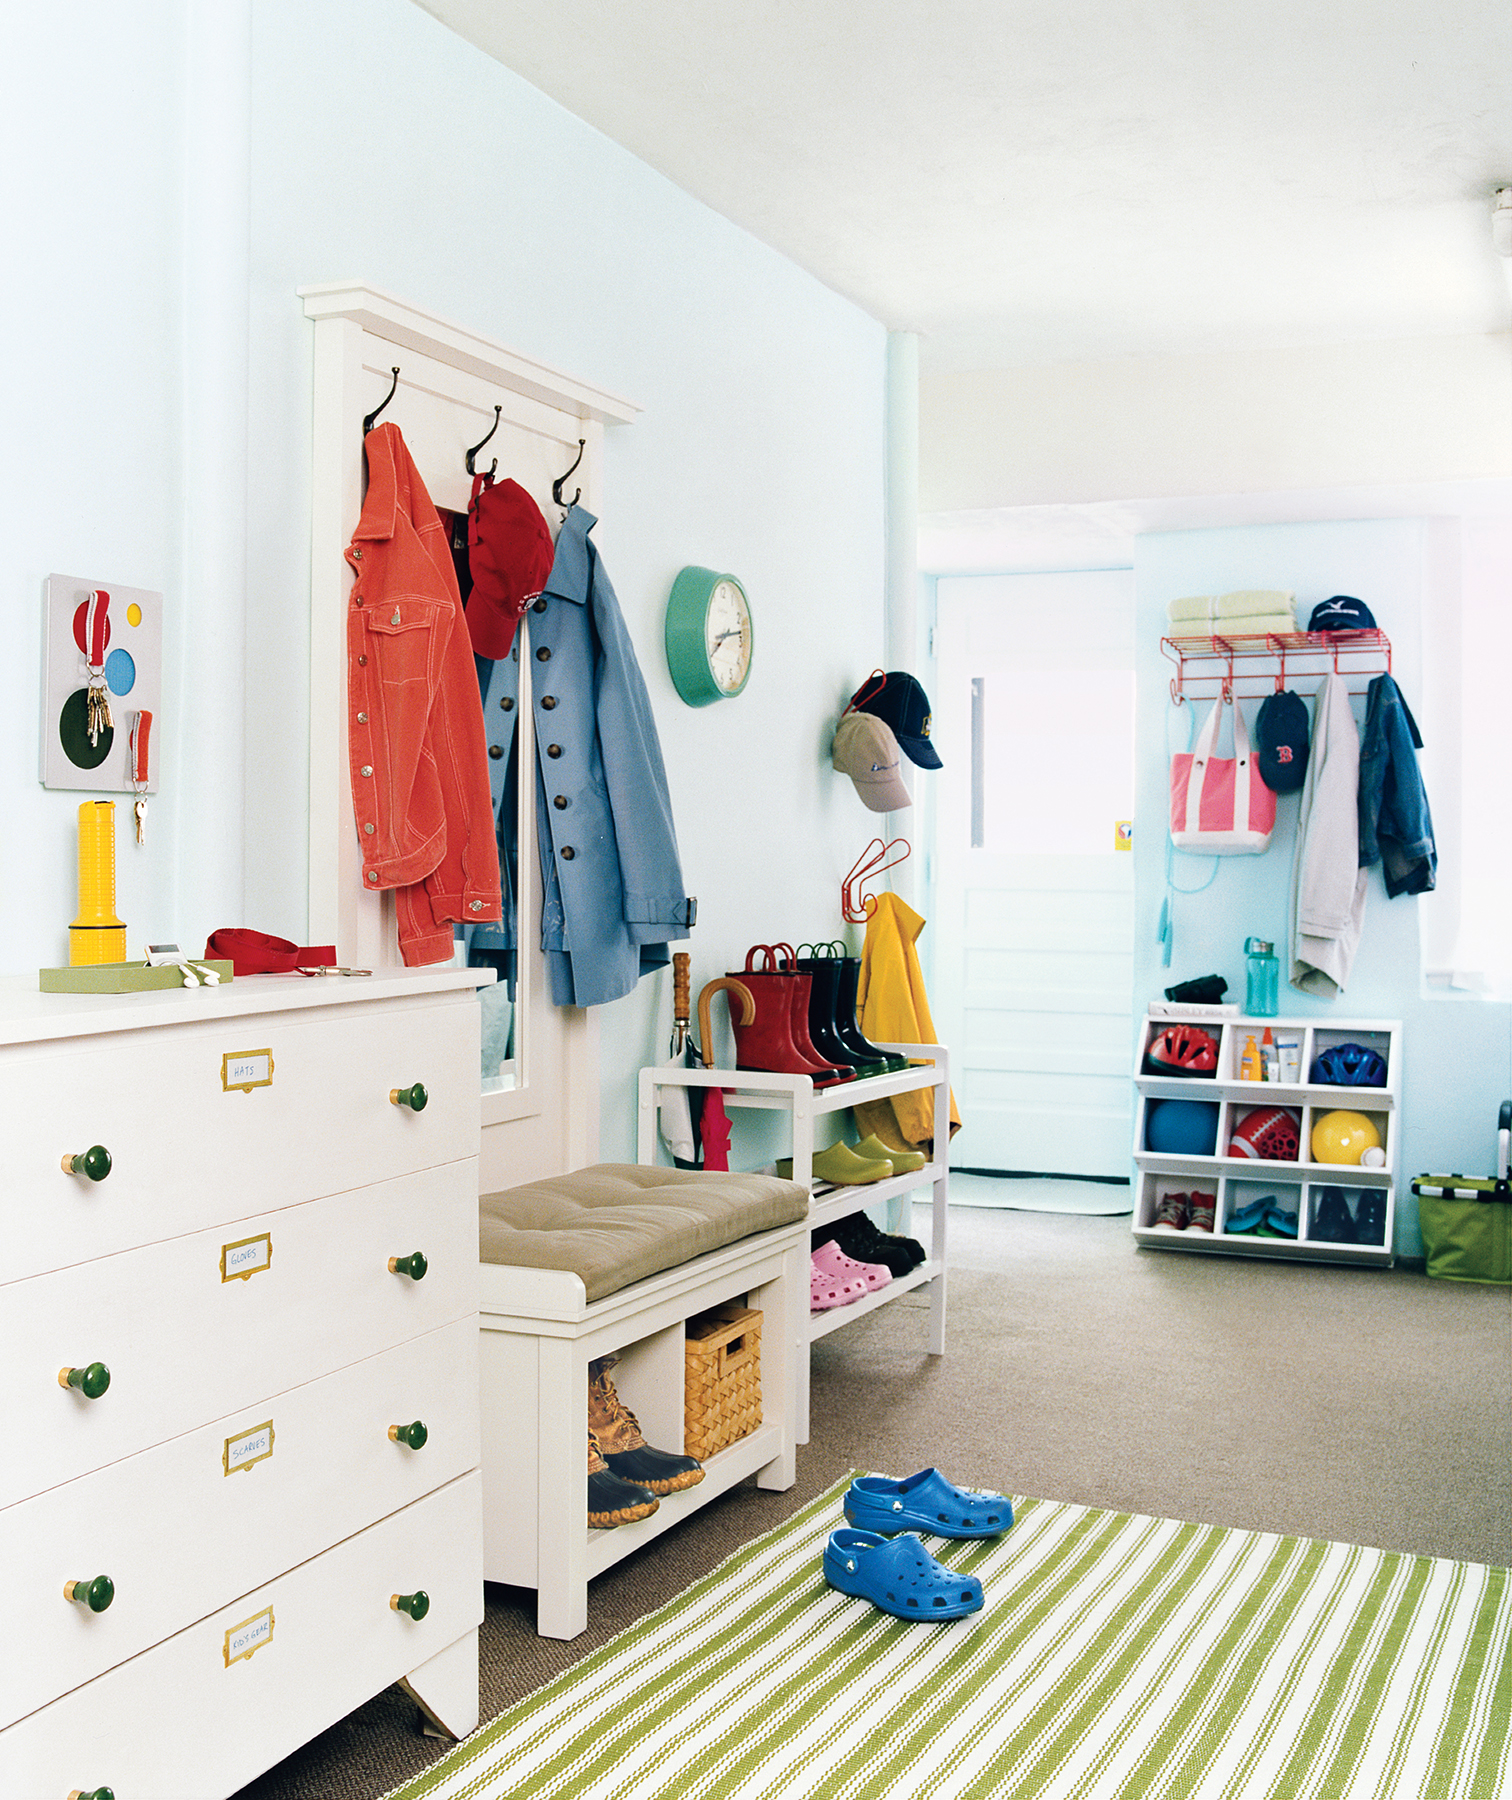 The focal point of this back entryway/mudroom? A spacious dresser specifically devoted to storing hats, gloves, scarves, and the like.